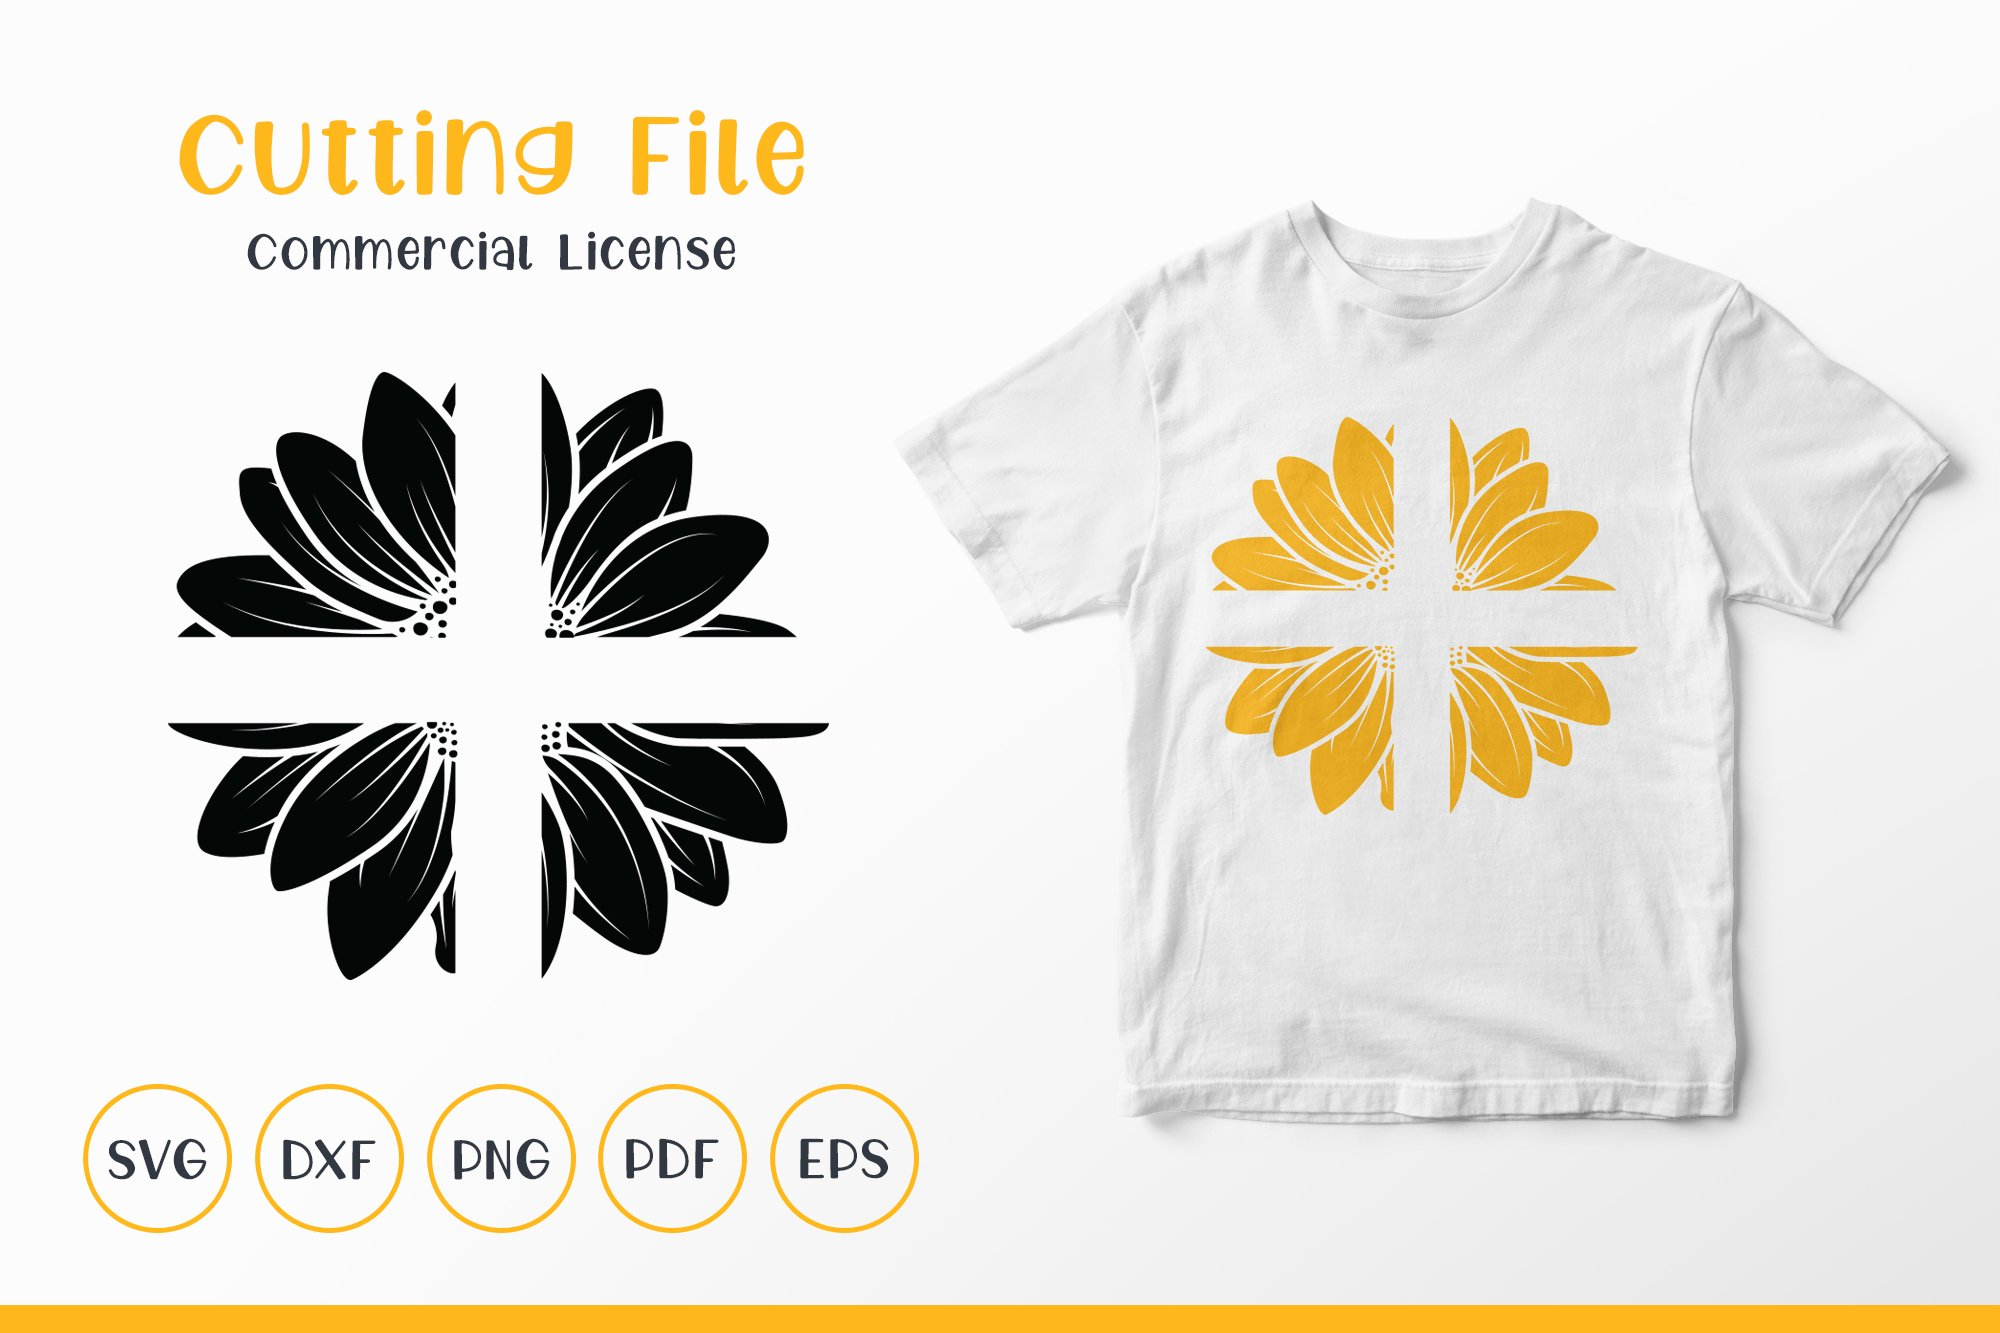 Sunflower SVG, Sunflower Clipart SVG, Sunflower Split SVG example image 1